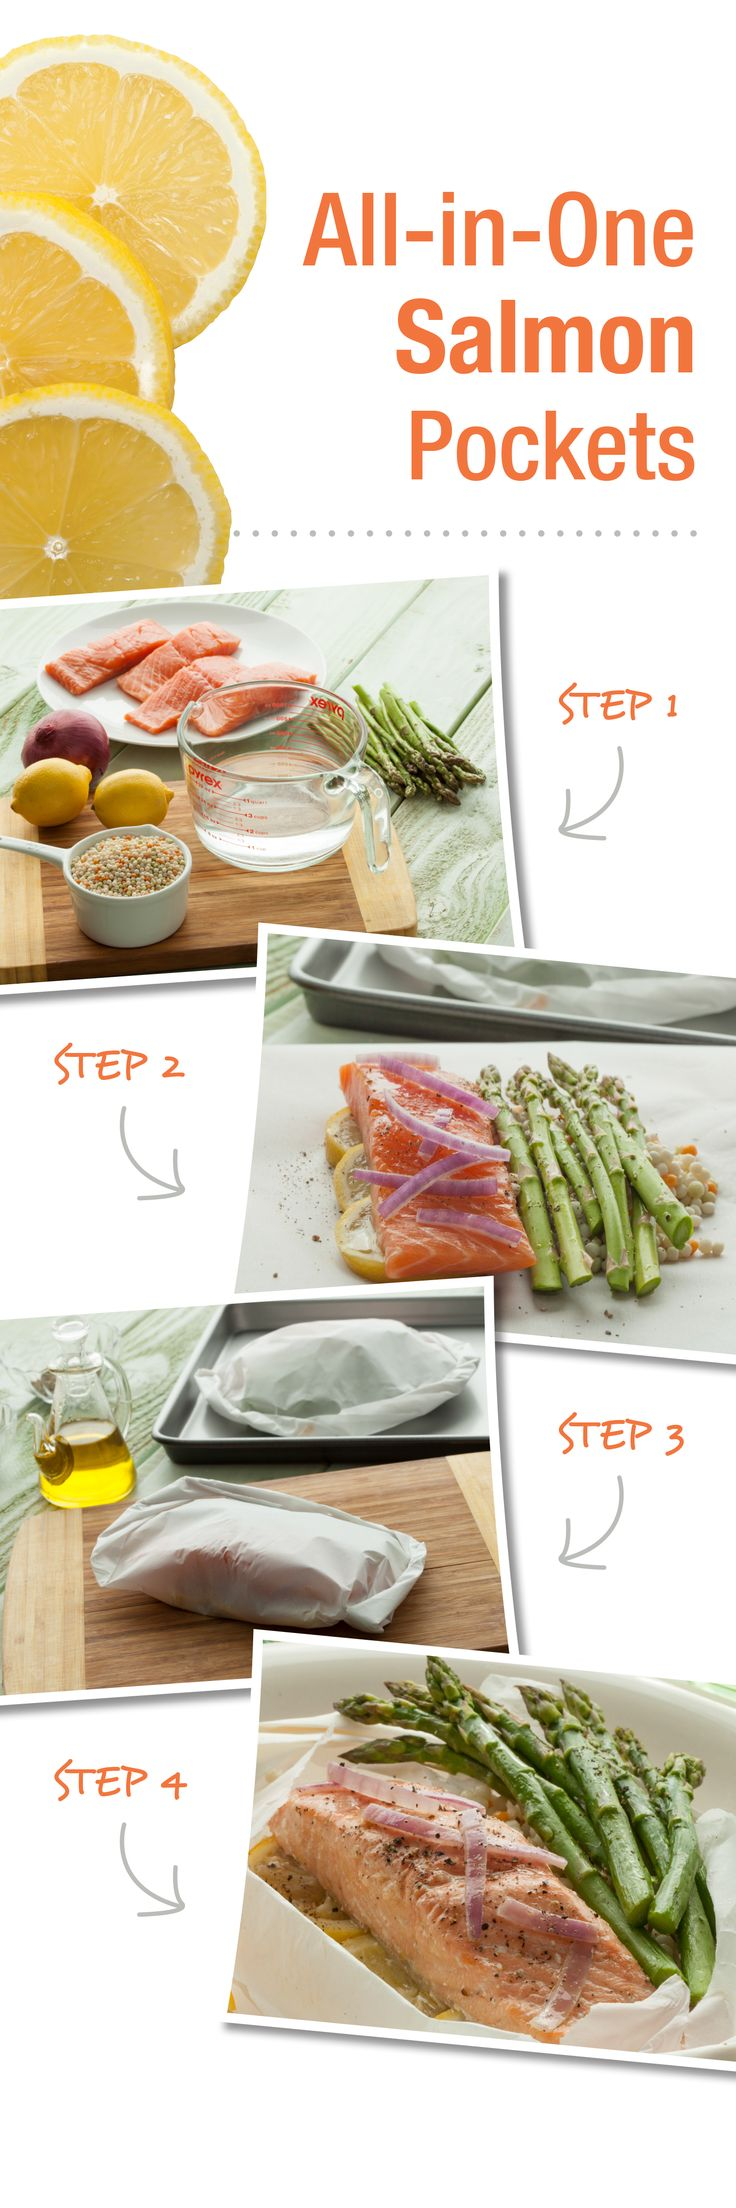 All-In-One Salmon Pockets – This no-fuss, easy salmon recipe is baked in parchment paper to lock in citrus and asparagus flavors.